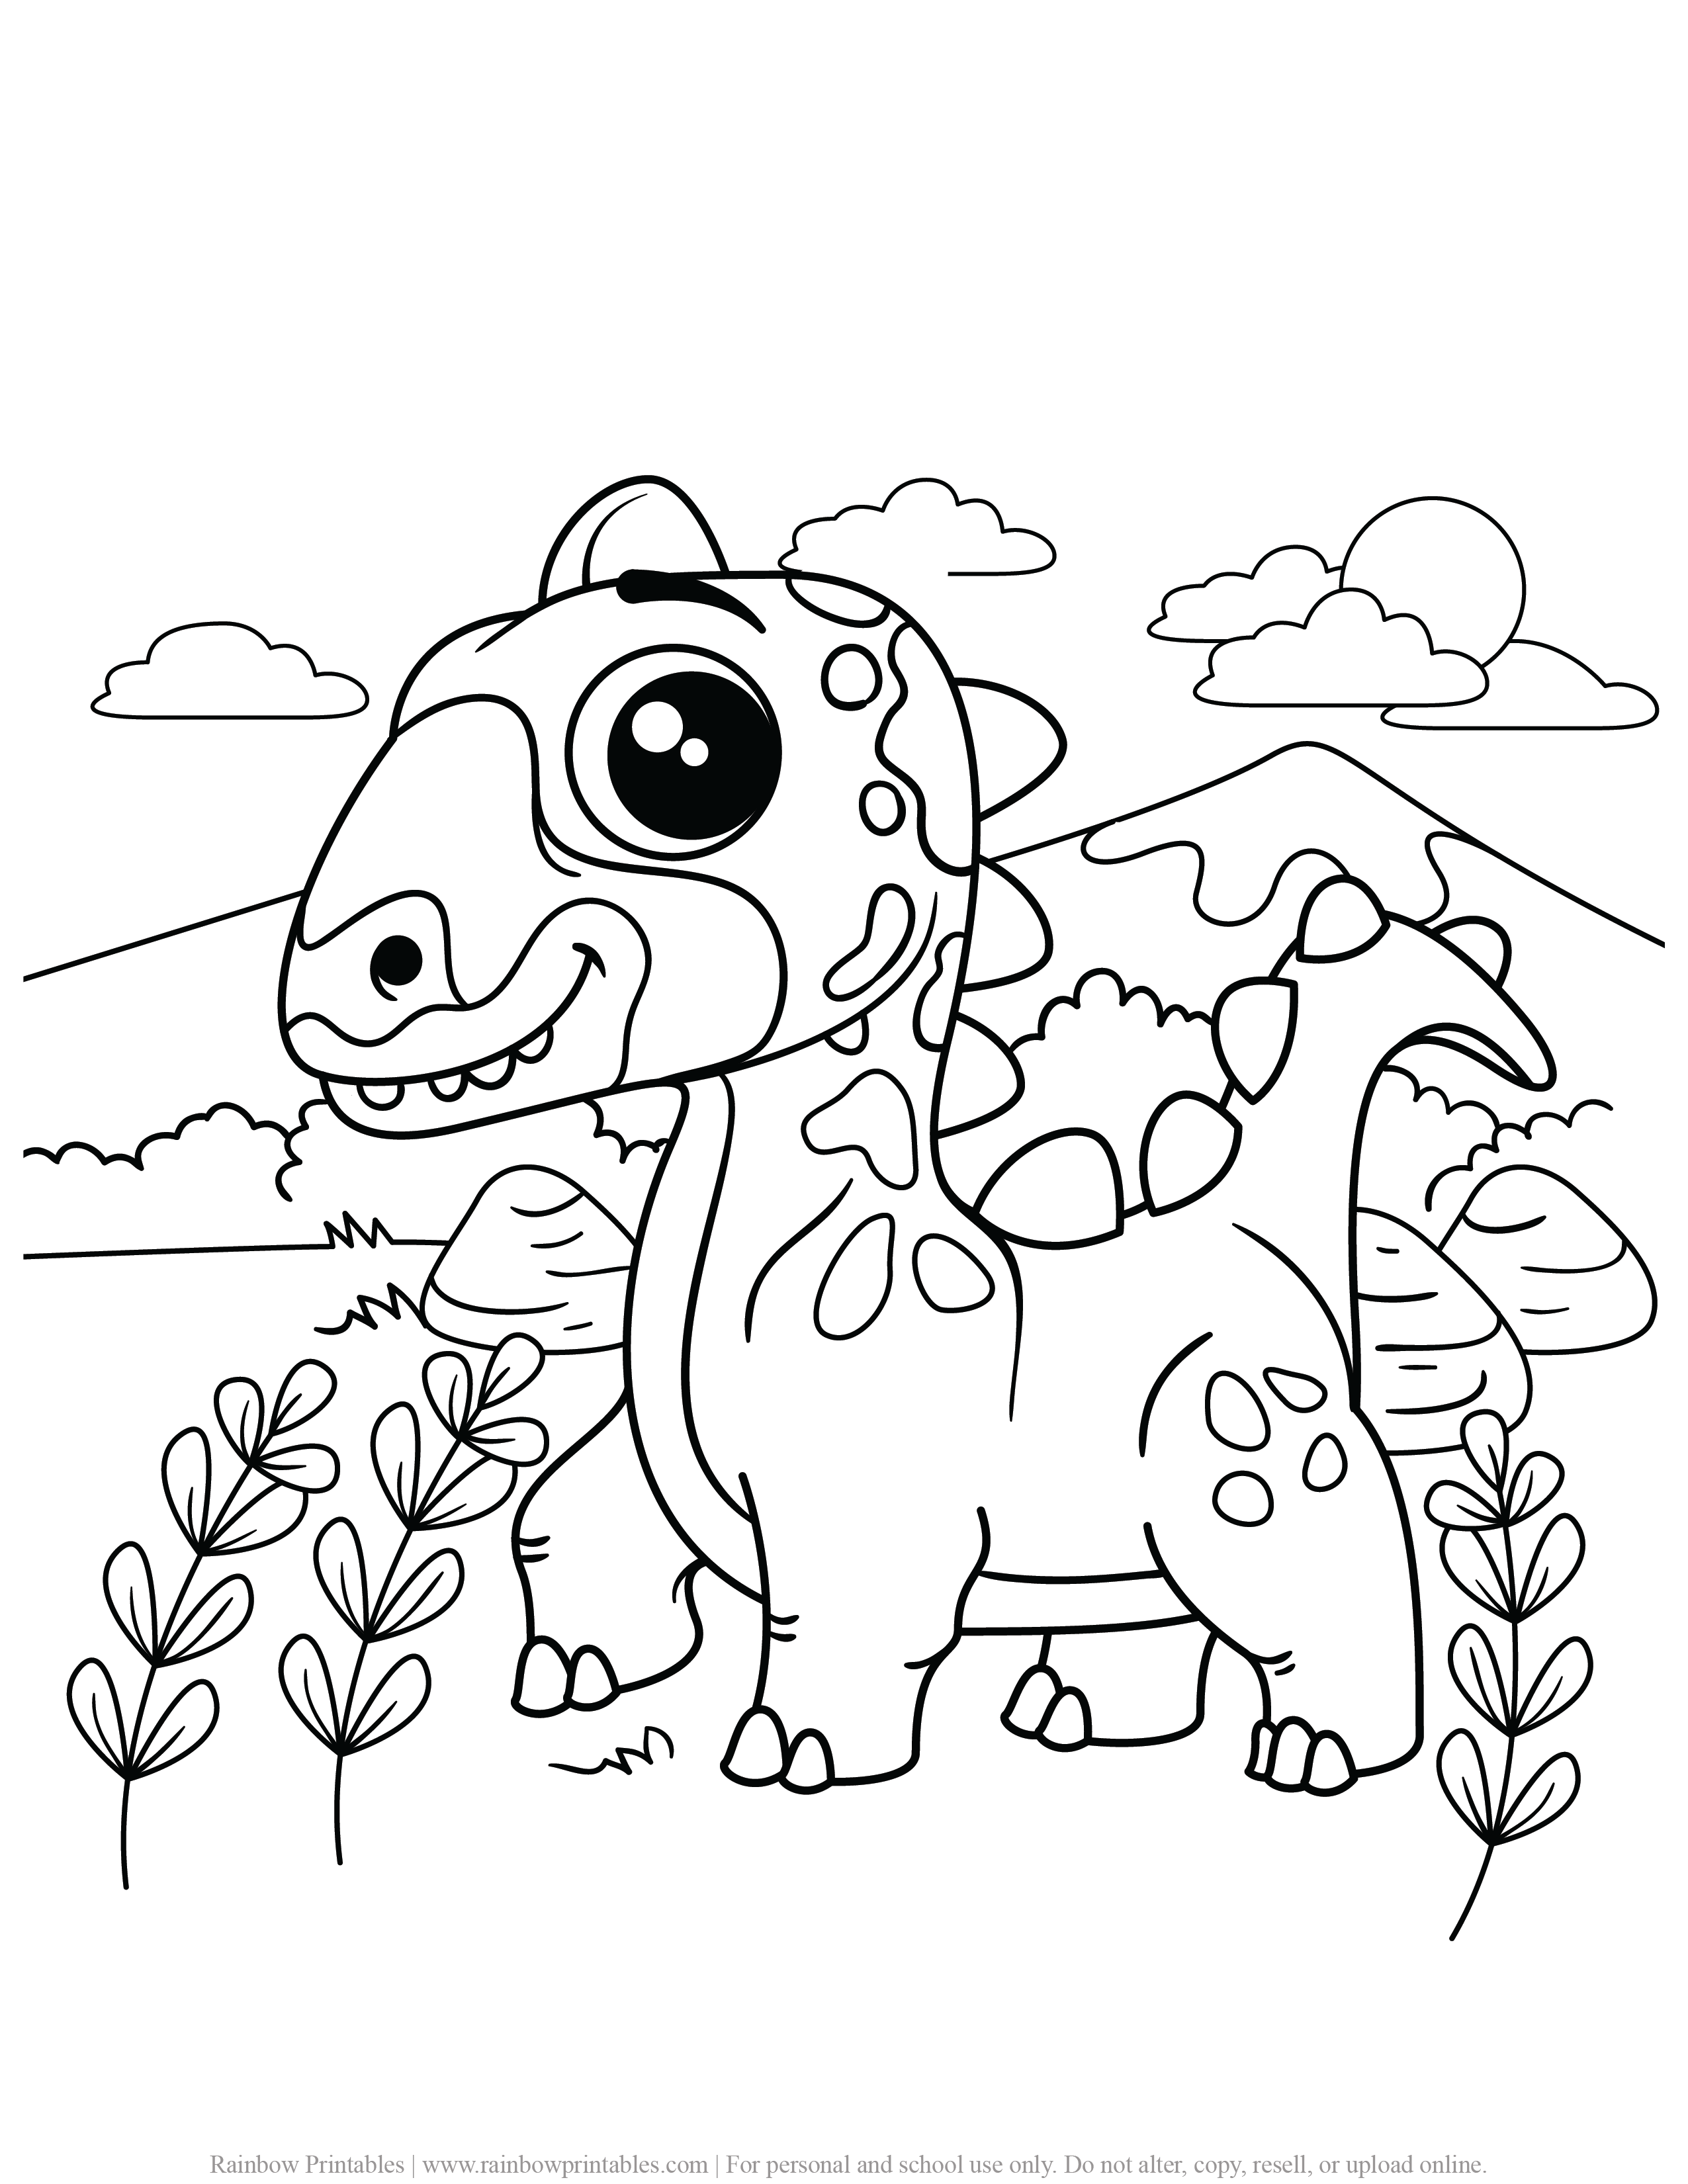 FREE DINOSAUR COLORING PAGES ACTIVITY FOR KIDS AND BOYS DINO DRAGON PRINTABLE-14